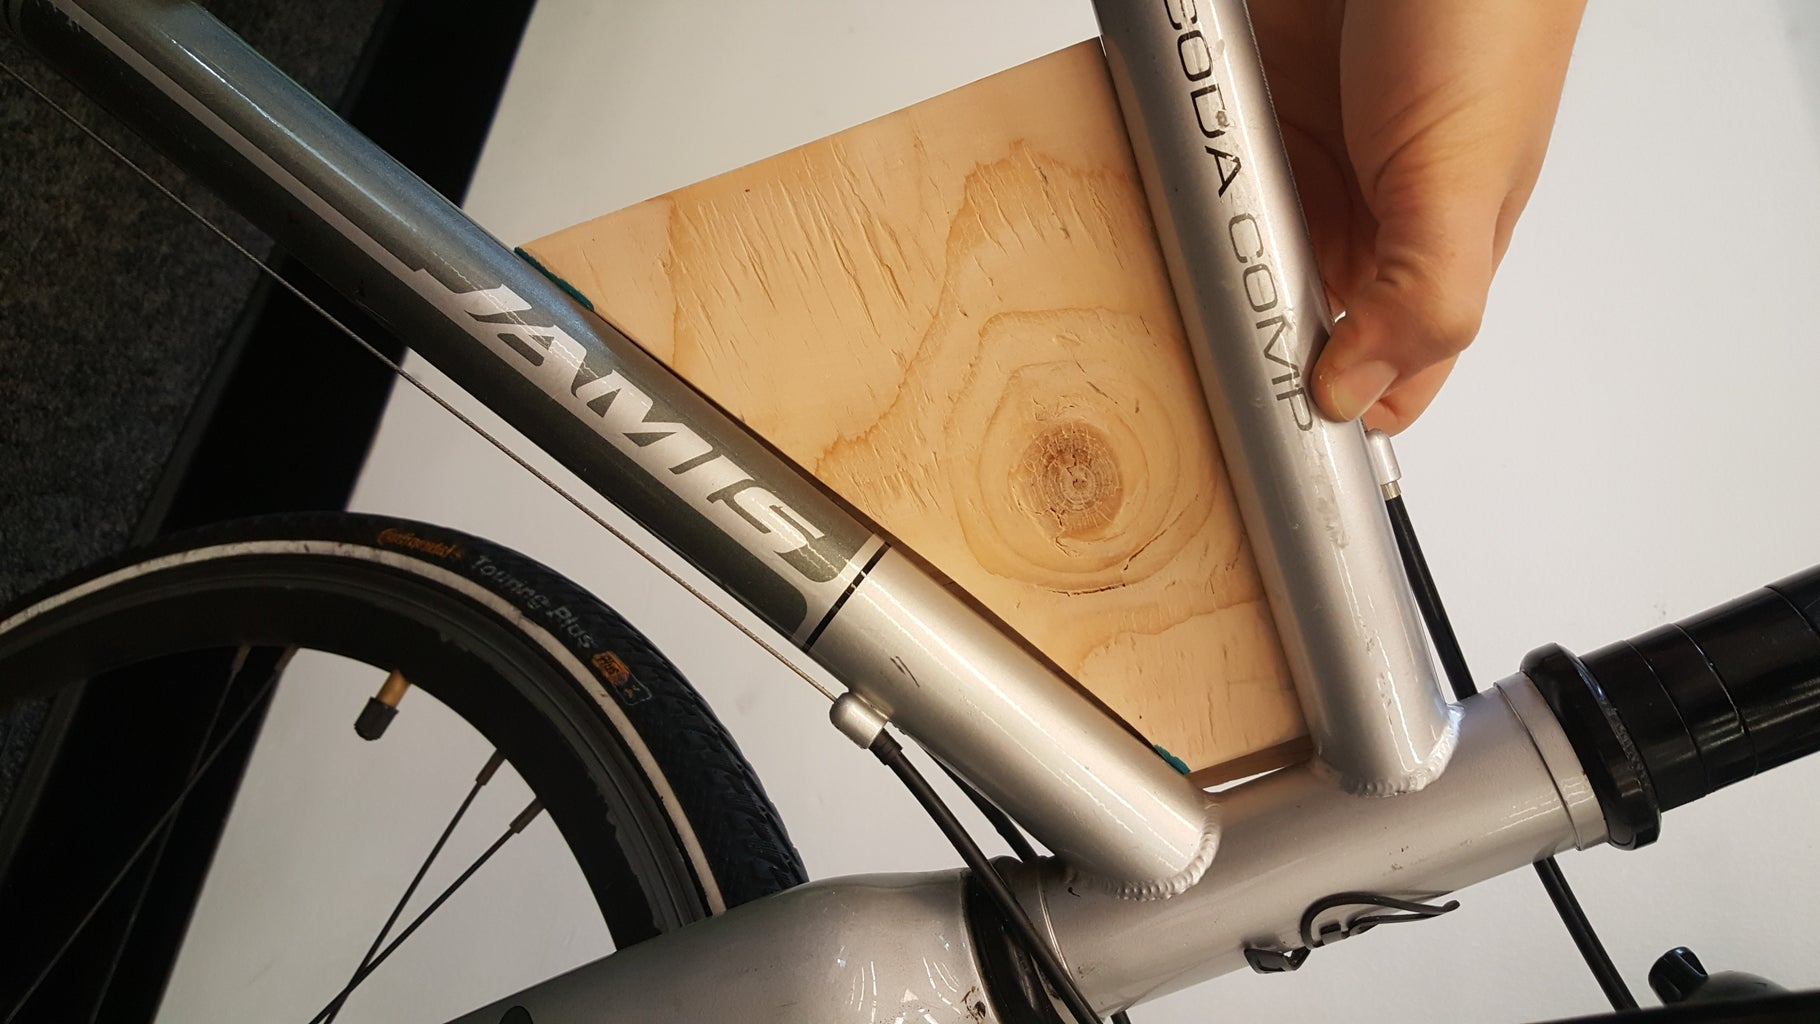 Bicycle Attachment Plate: Fine-tuning